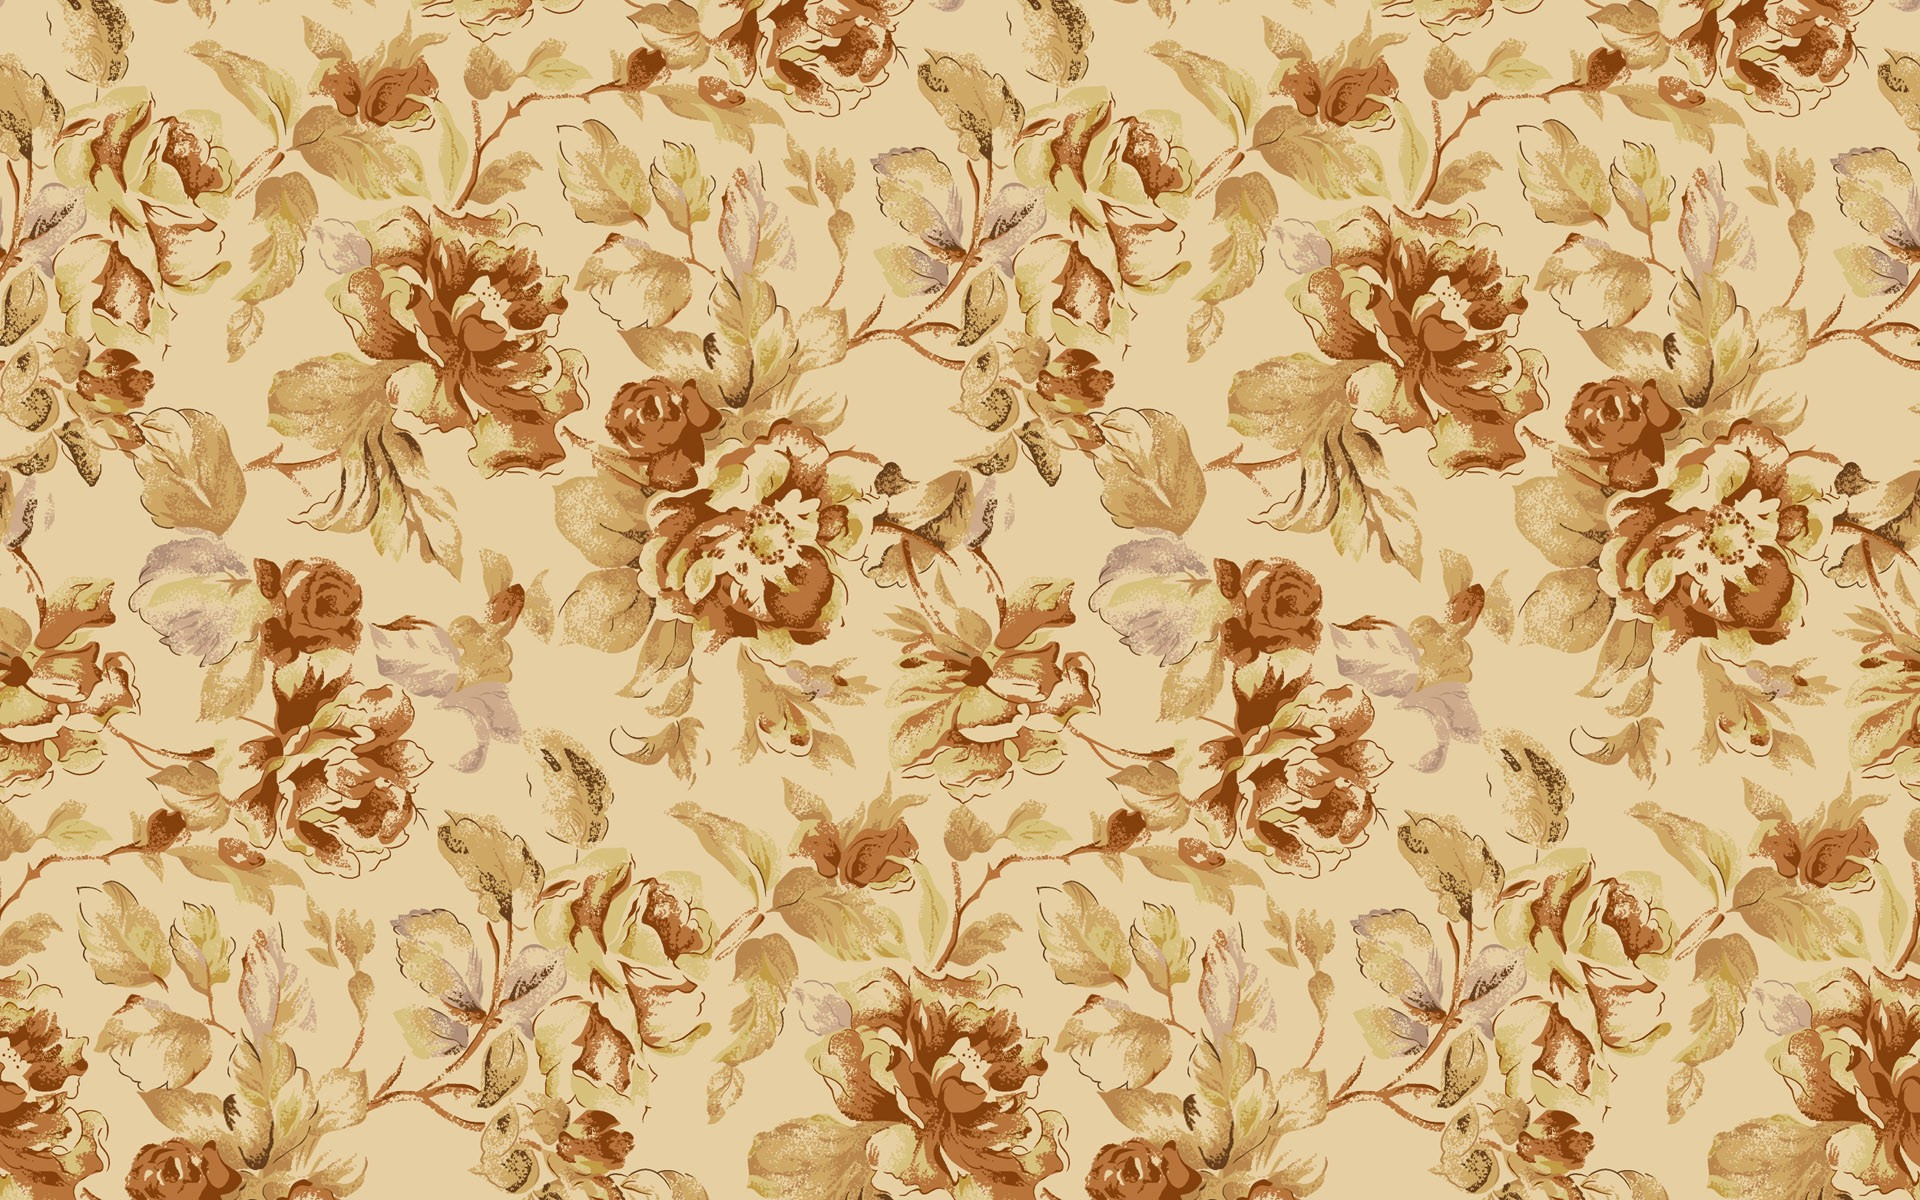 1920x1200 Vintage Flower Wallpaper Mobile